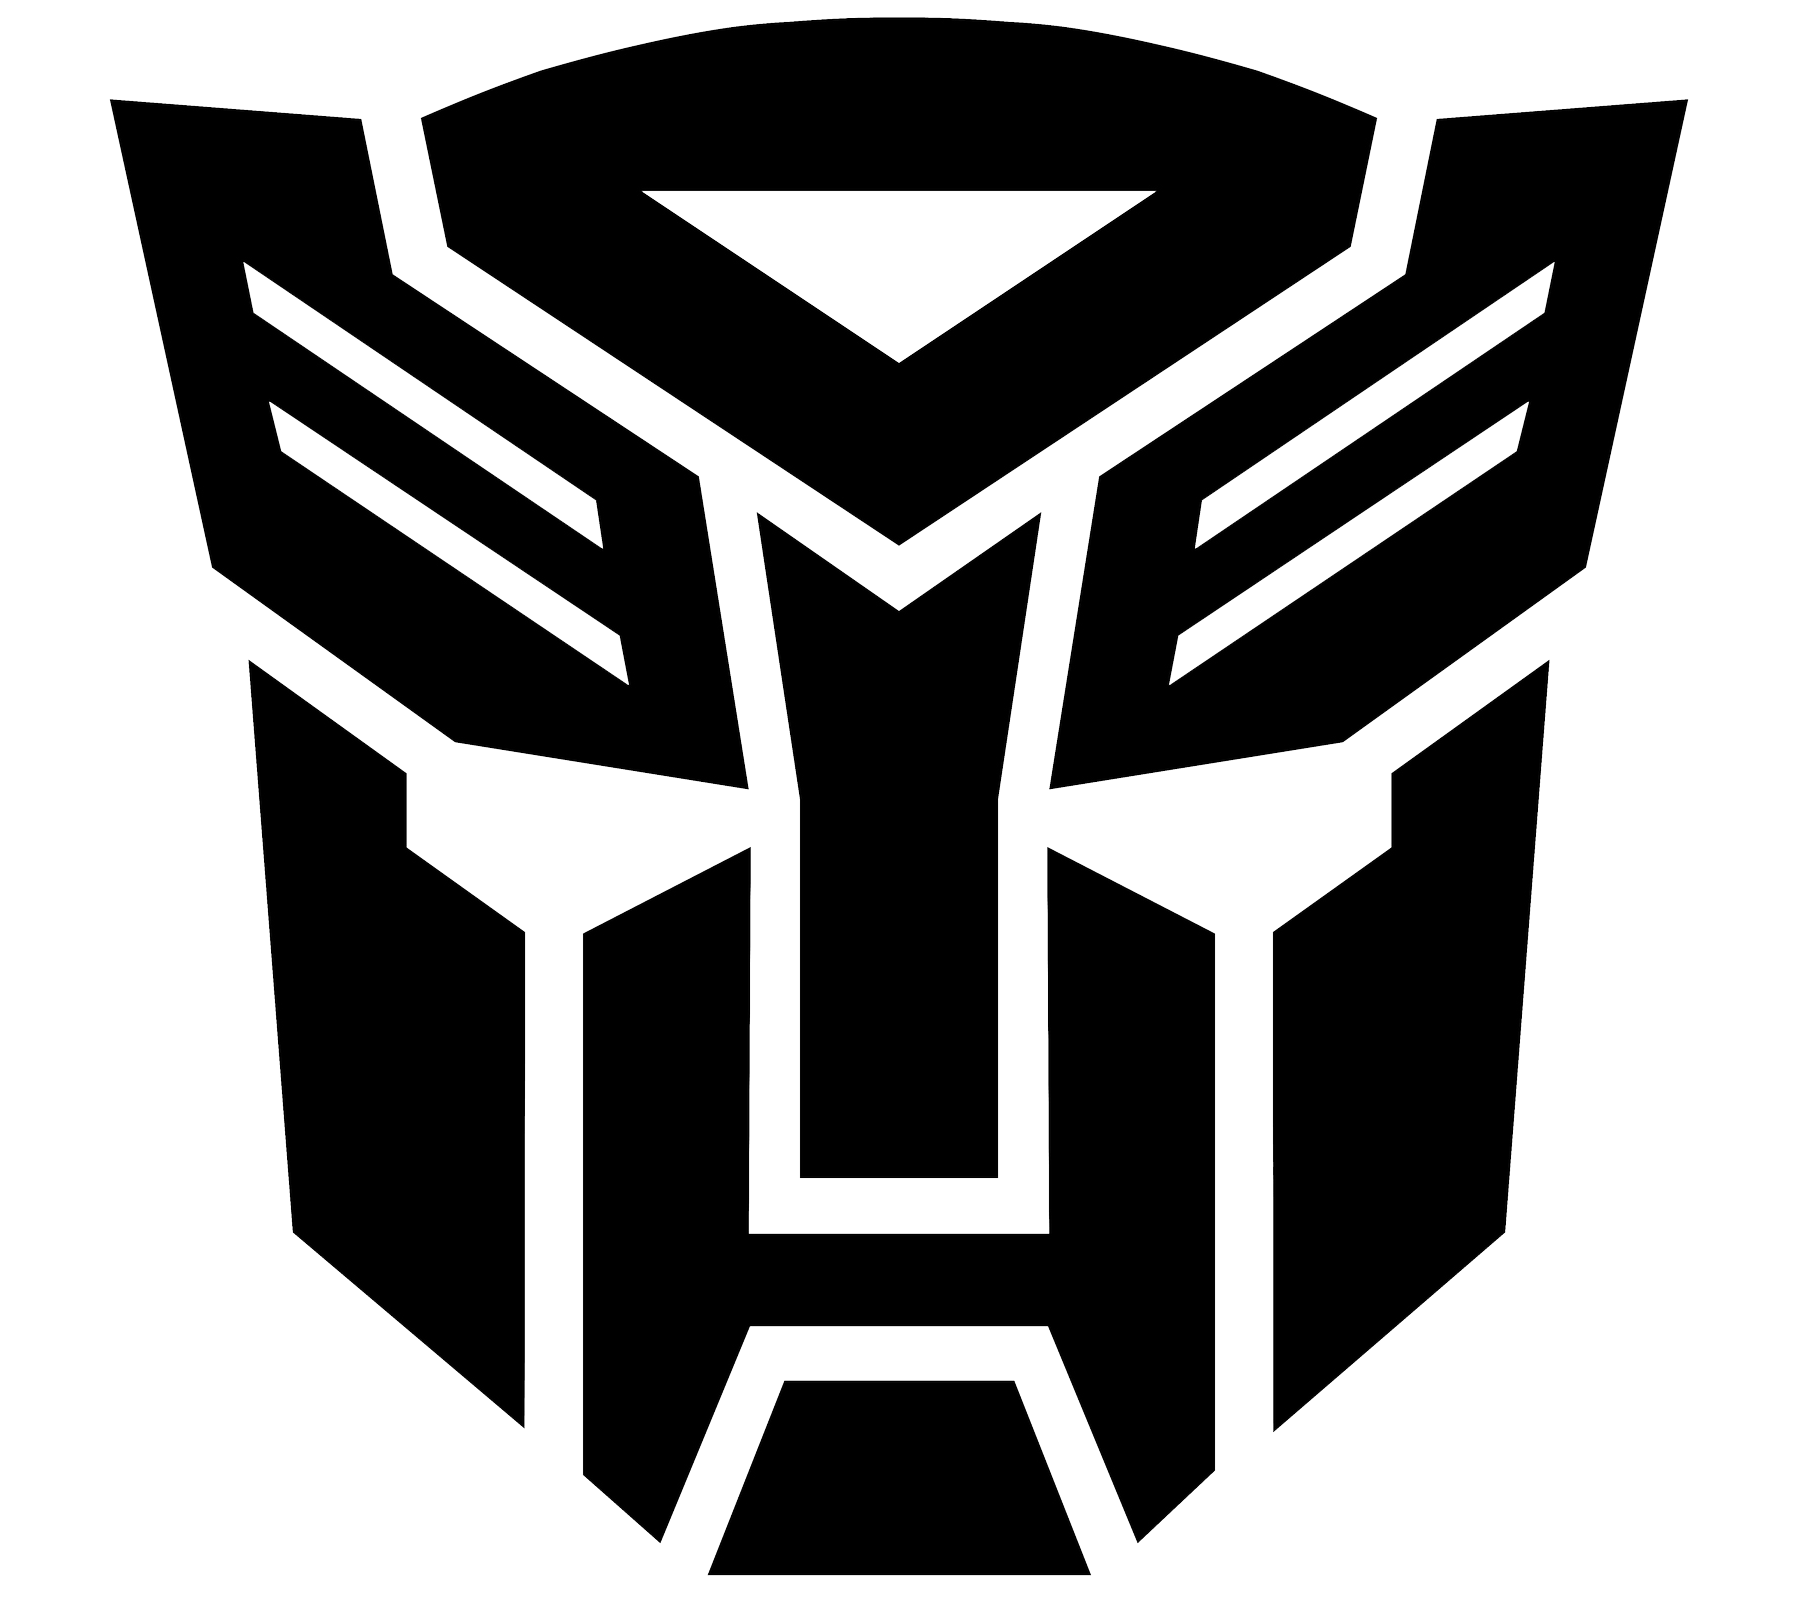 Transformers white background free. Dress clipart logo